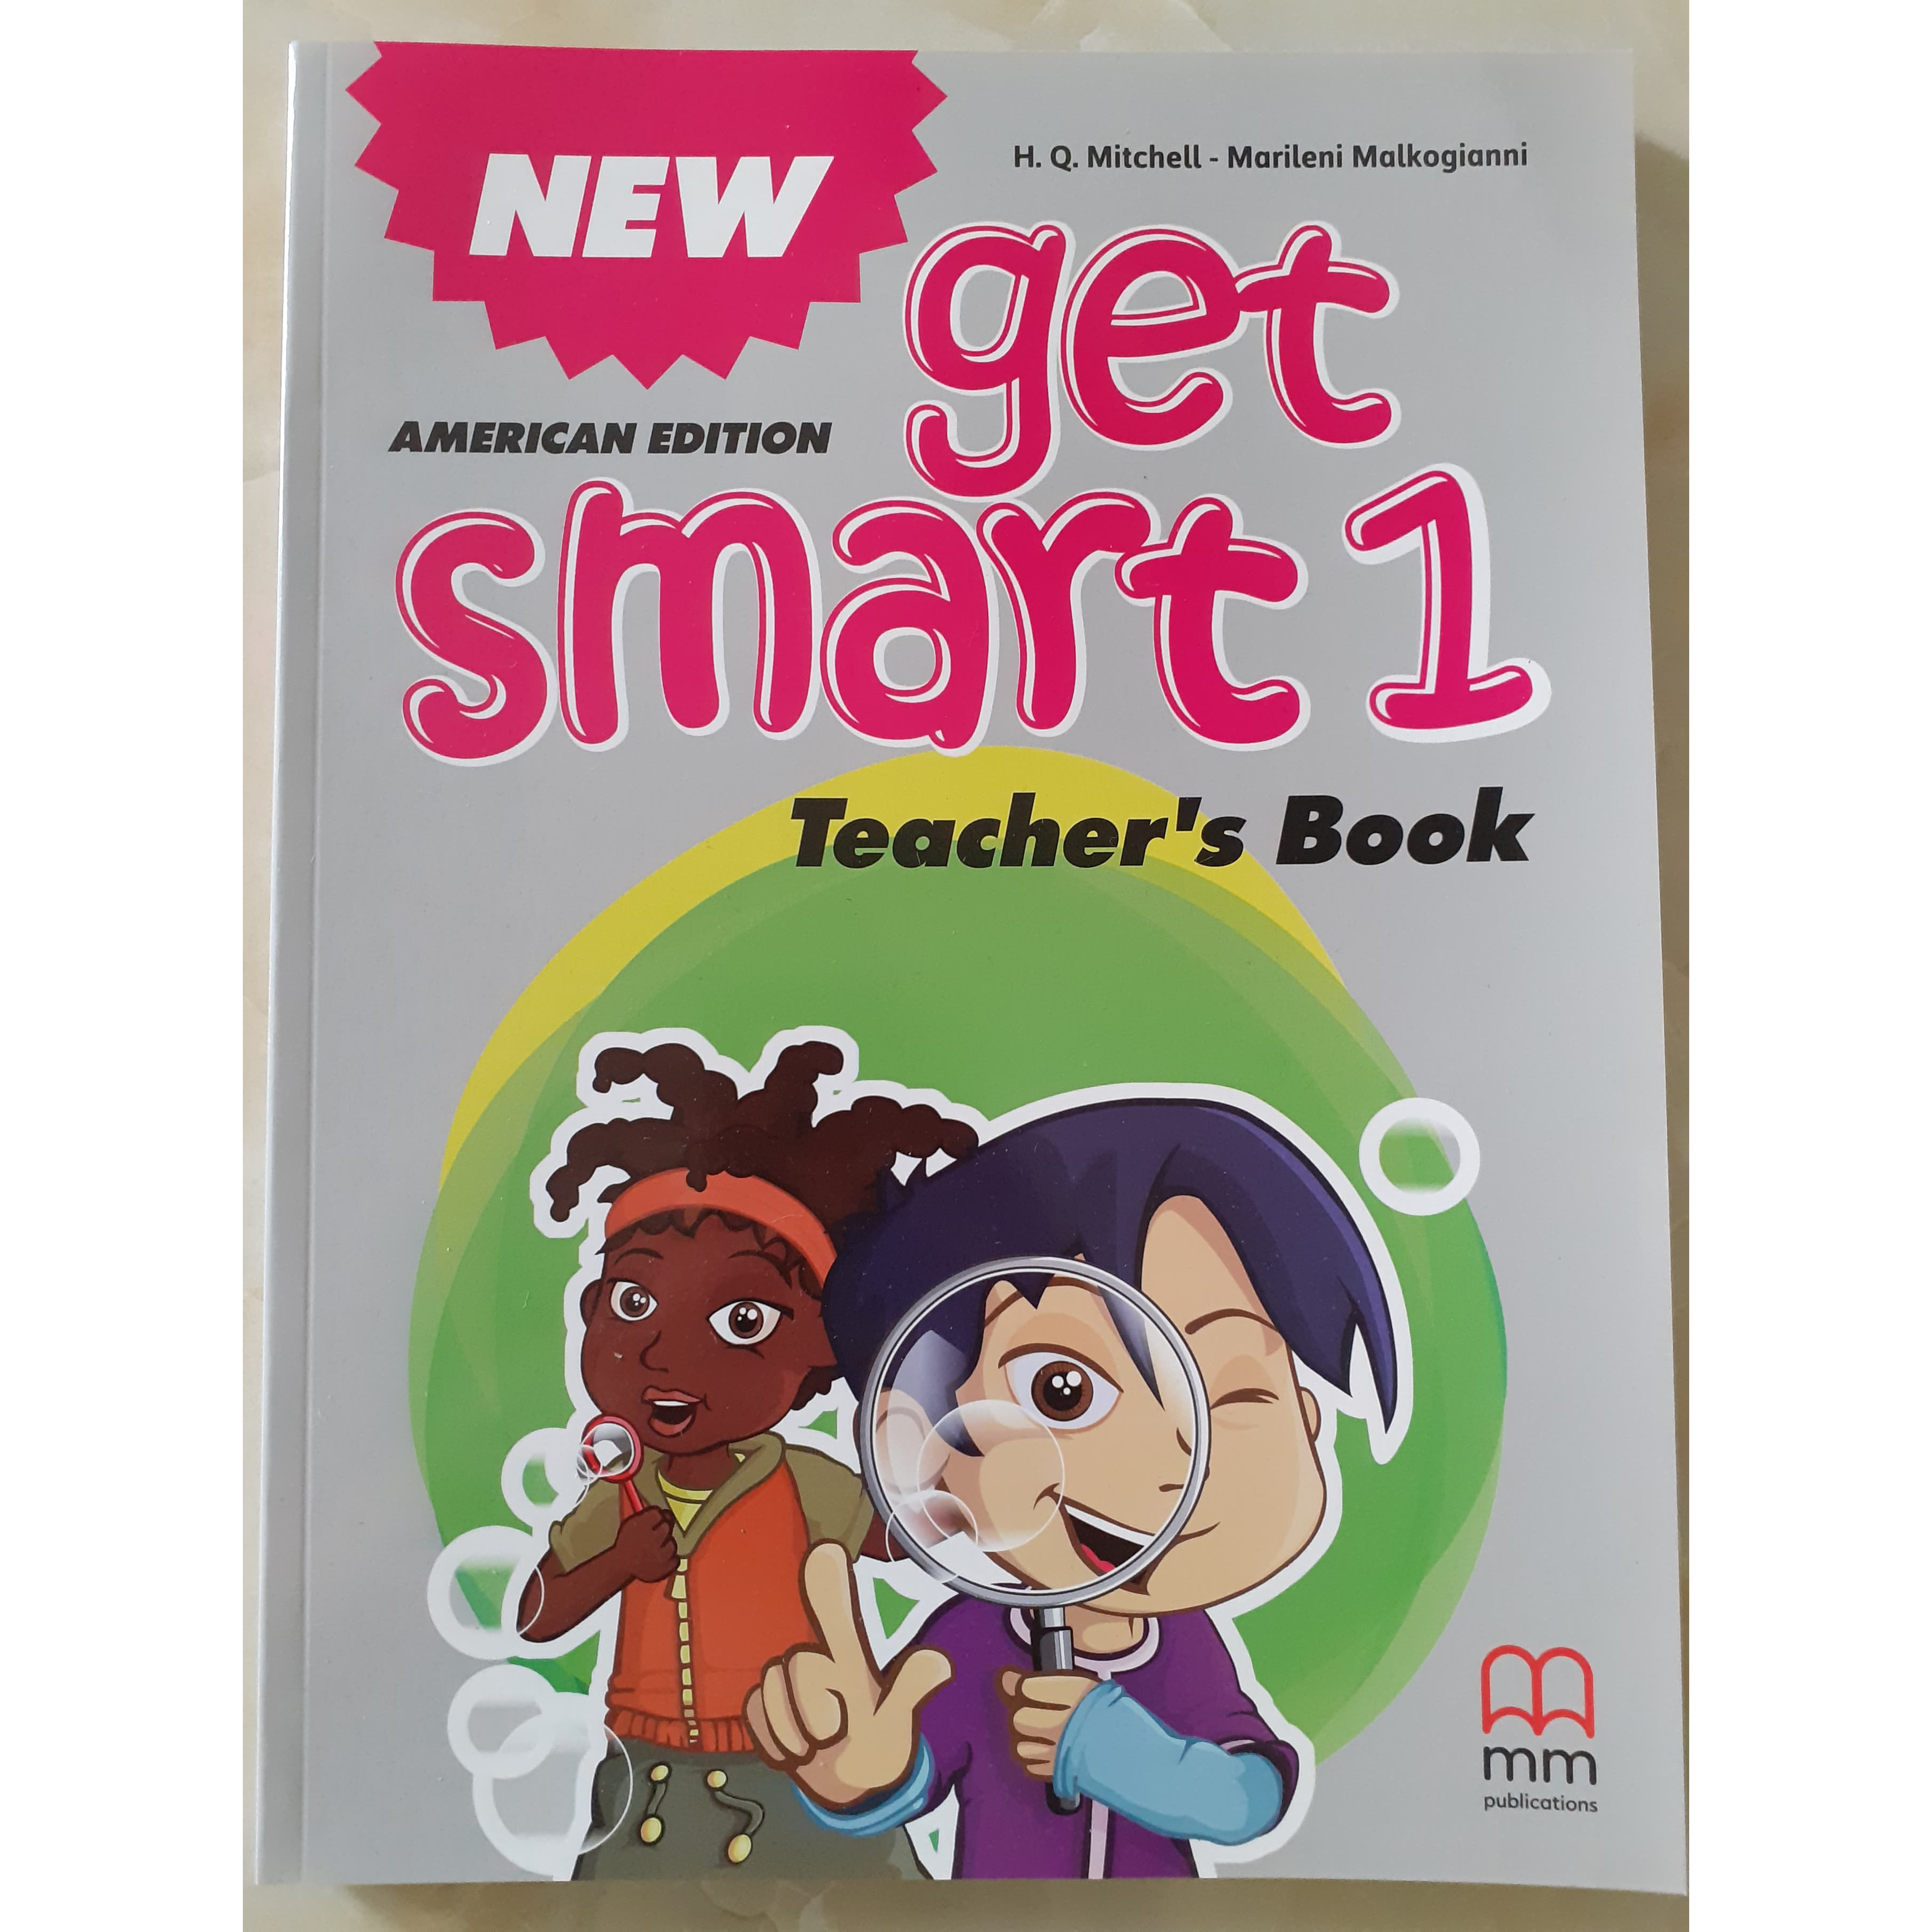 MM Publications: New Get Smart 1 Teacher's Book ( American Edition )